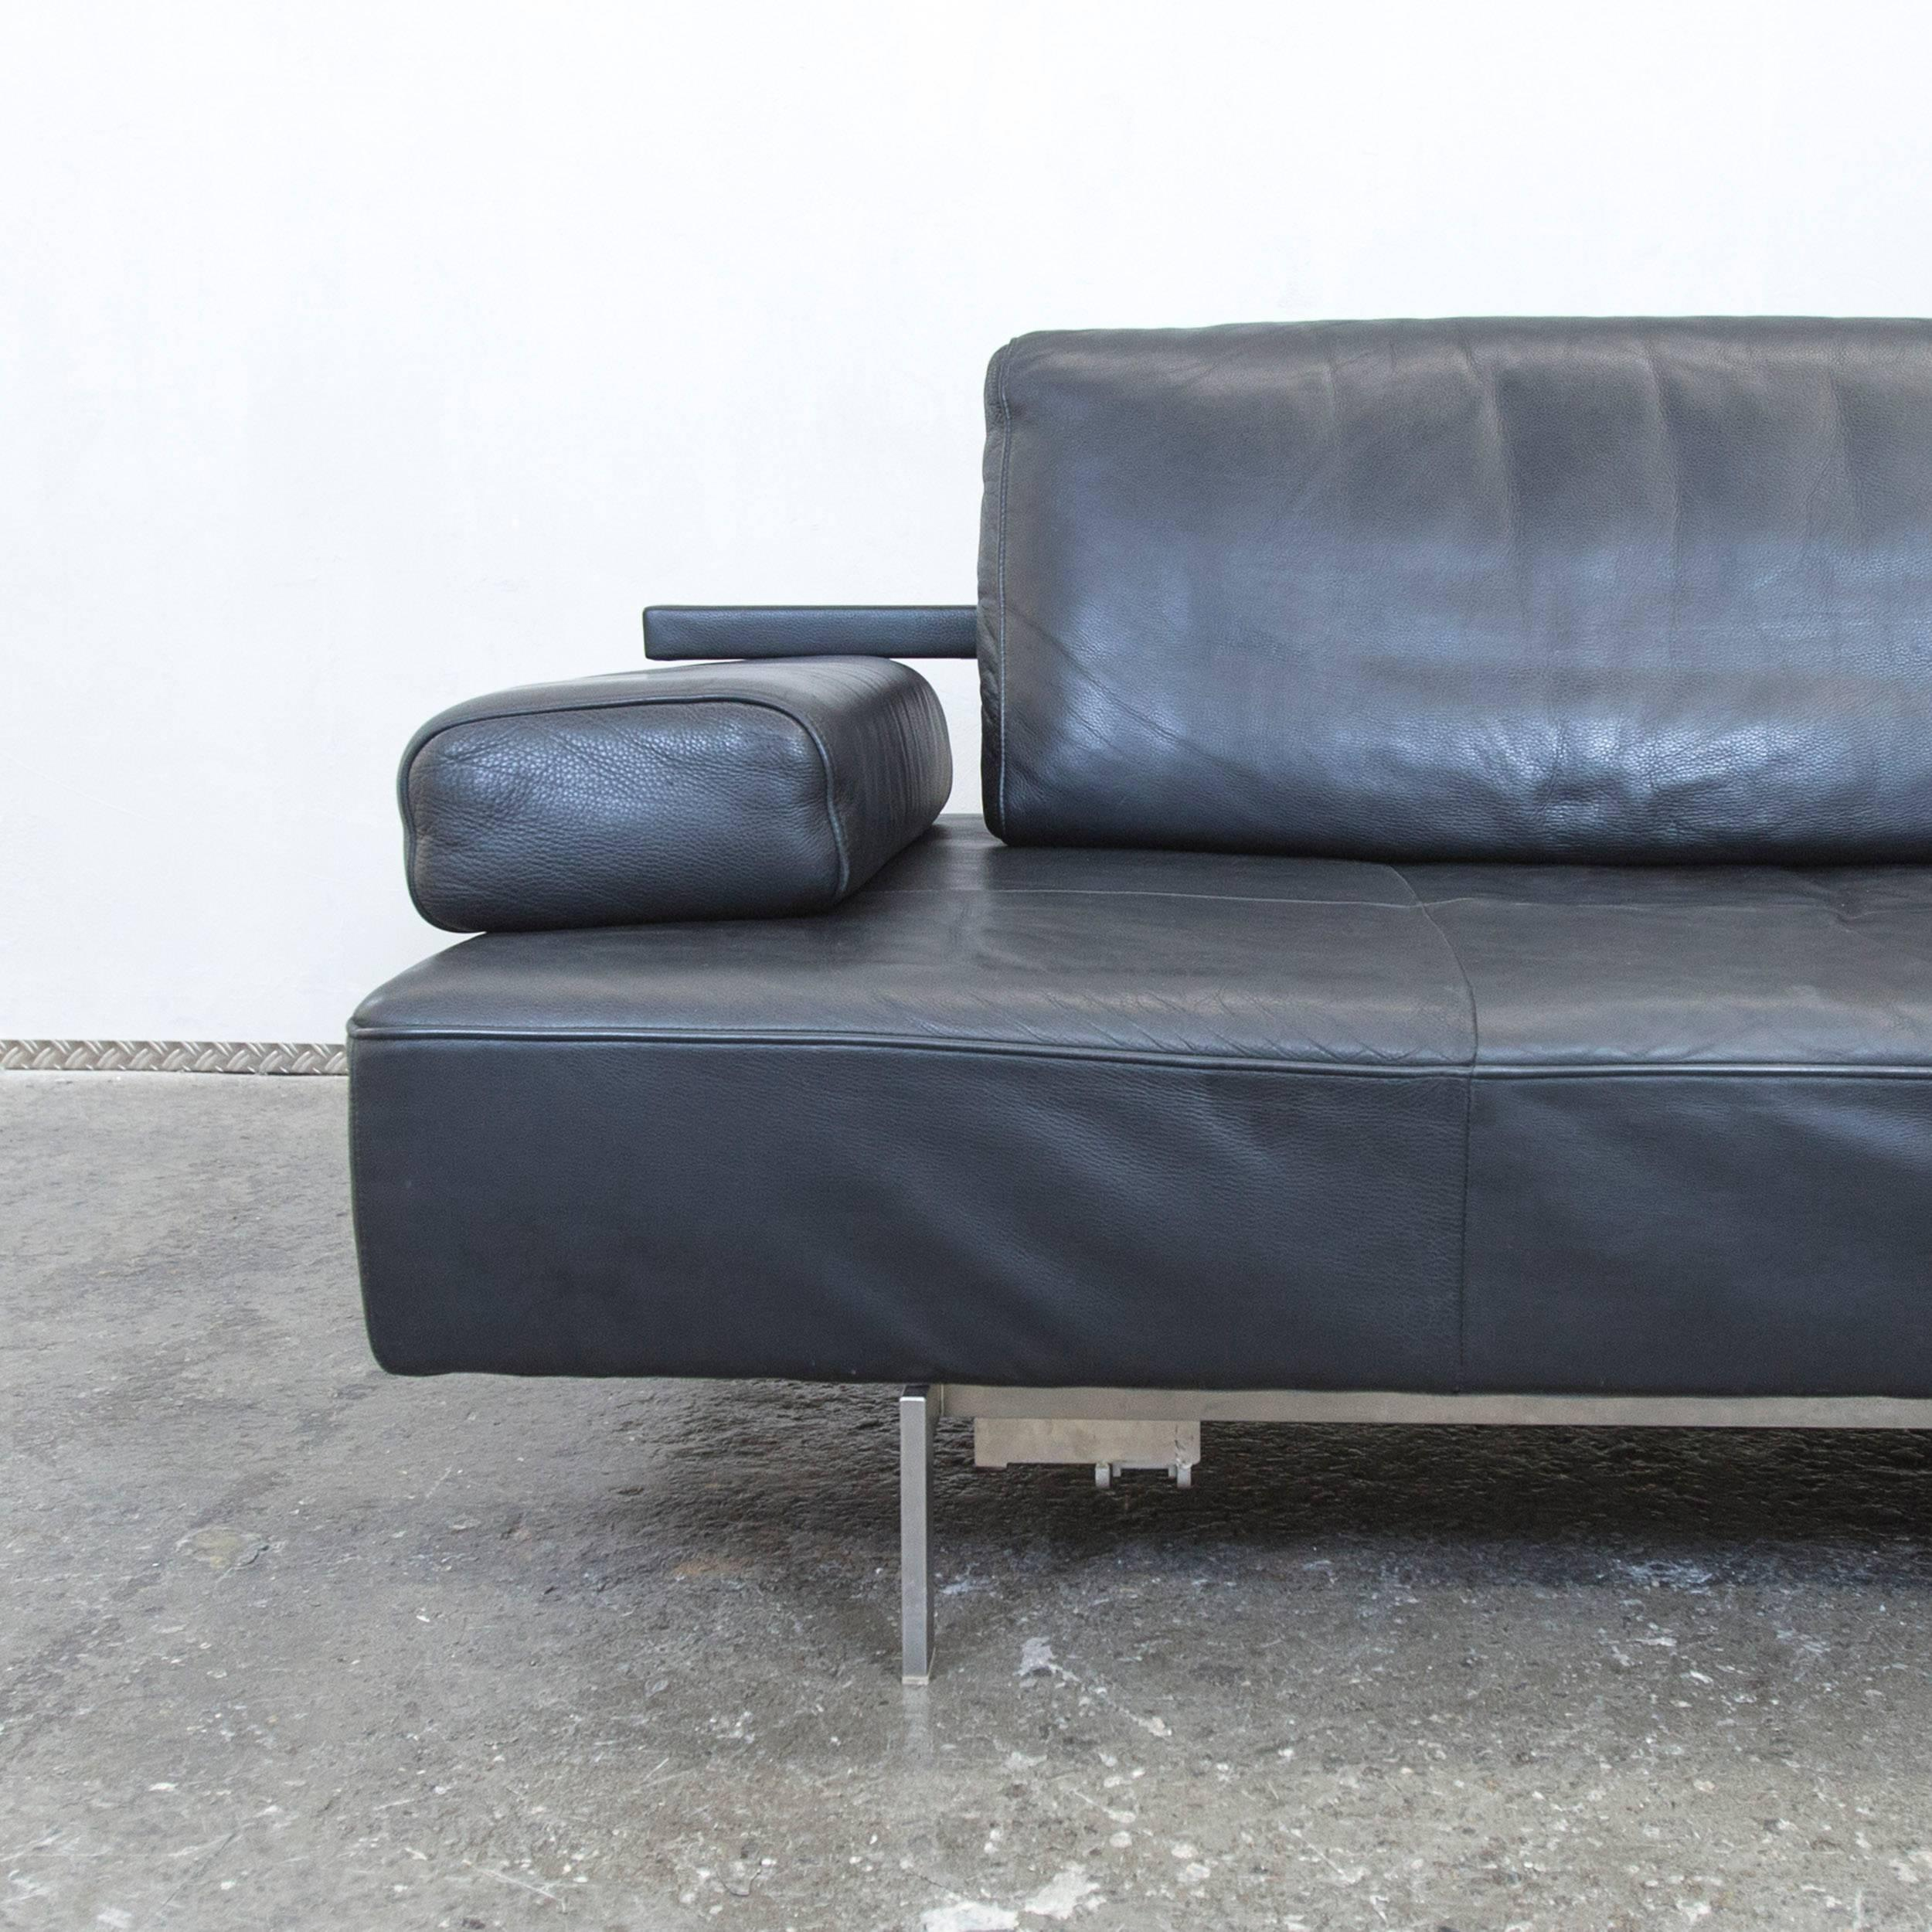 Sofa Funktion Couch Schwarz Leder Simple Best Cheap Beautiful Rolf Benz